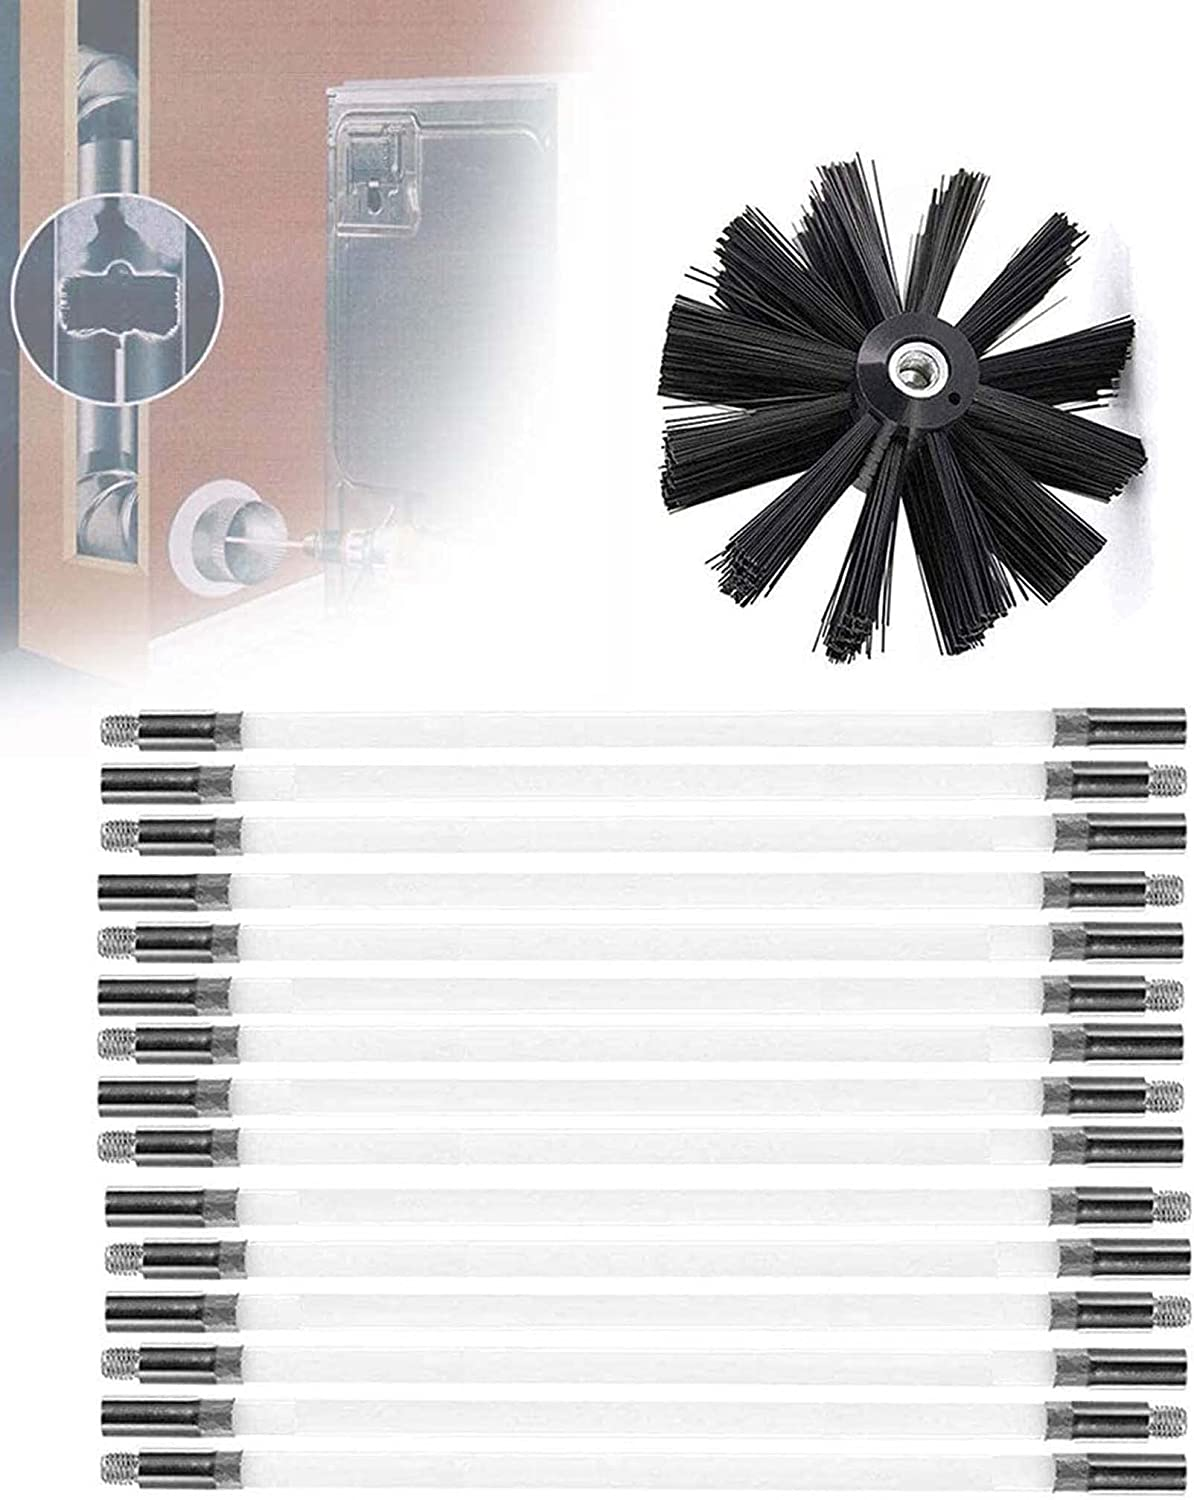 QDY -Chimney Sweep Brushes Kit Dryer Vent Bombing new work Drain Se Cleaning Rod Wholesale